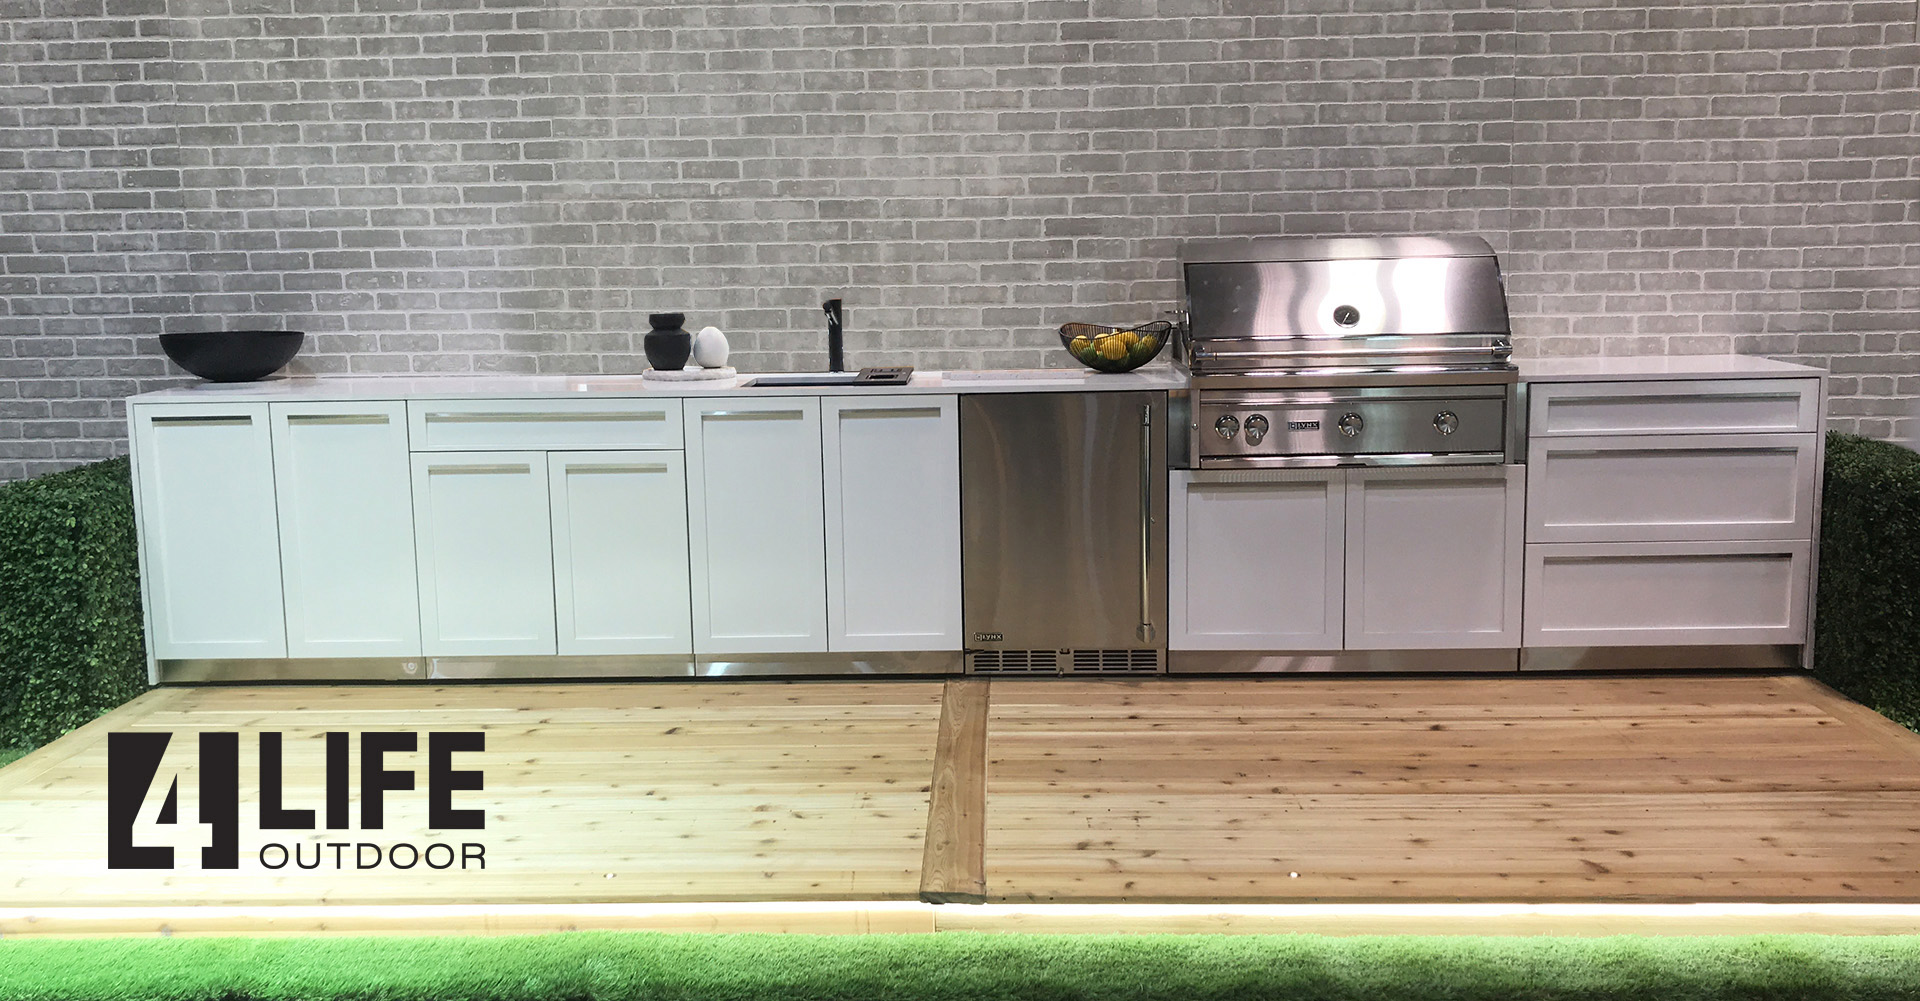 White Stainless Steel Outdoor Kitchen Cabinets 1